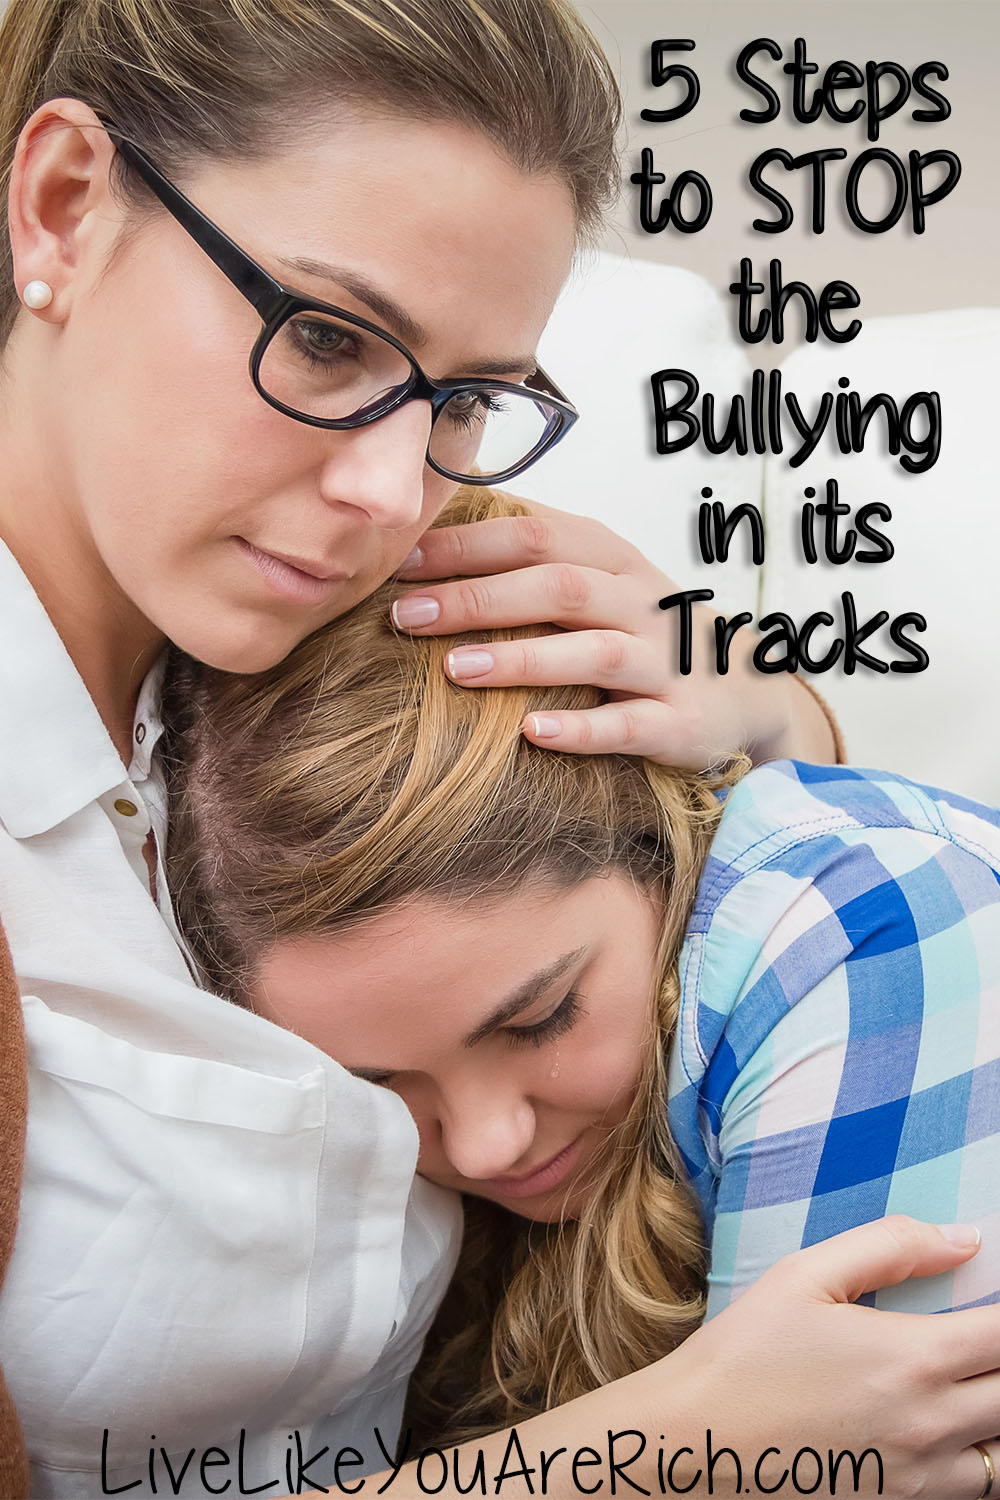 5 Steps to STOP the Bullying in its Tracks